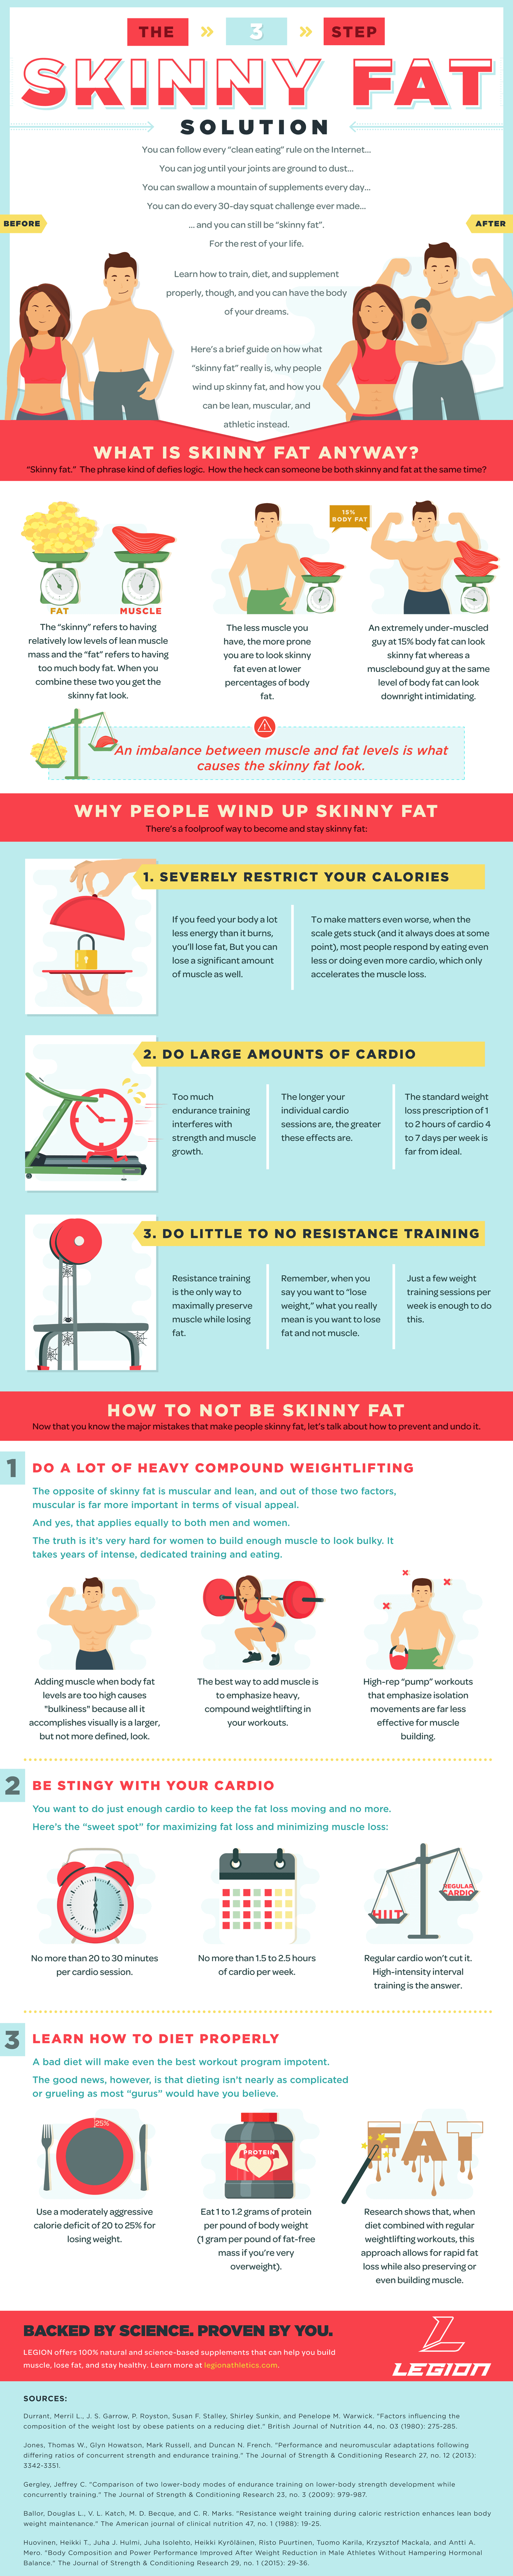 [INFOGRAPHIC] The Simple 3-Step Solution to Skinny Fat